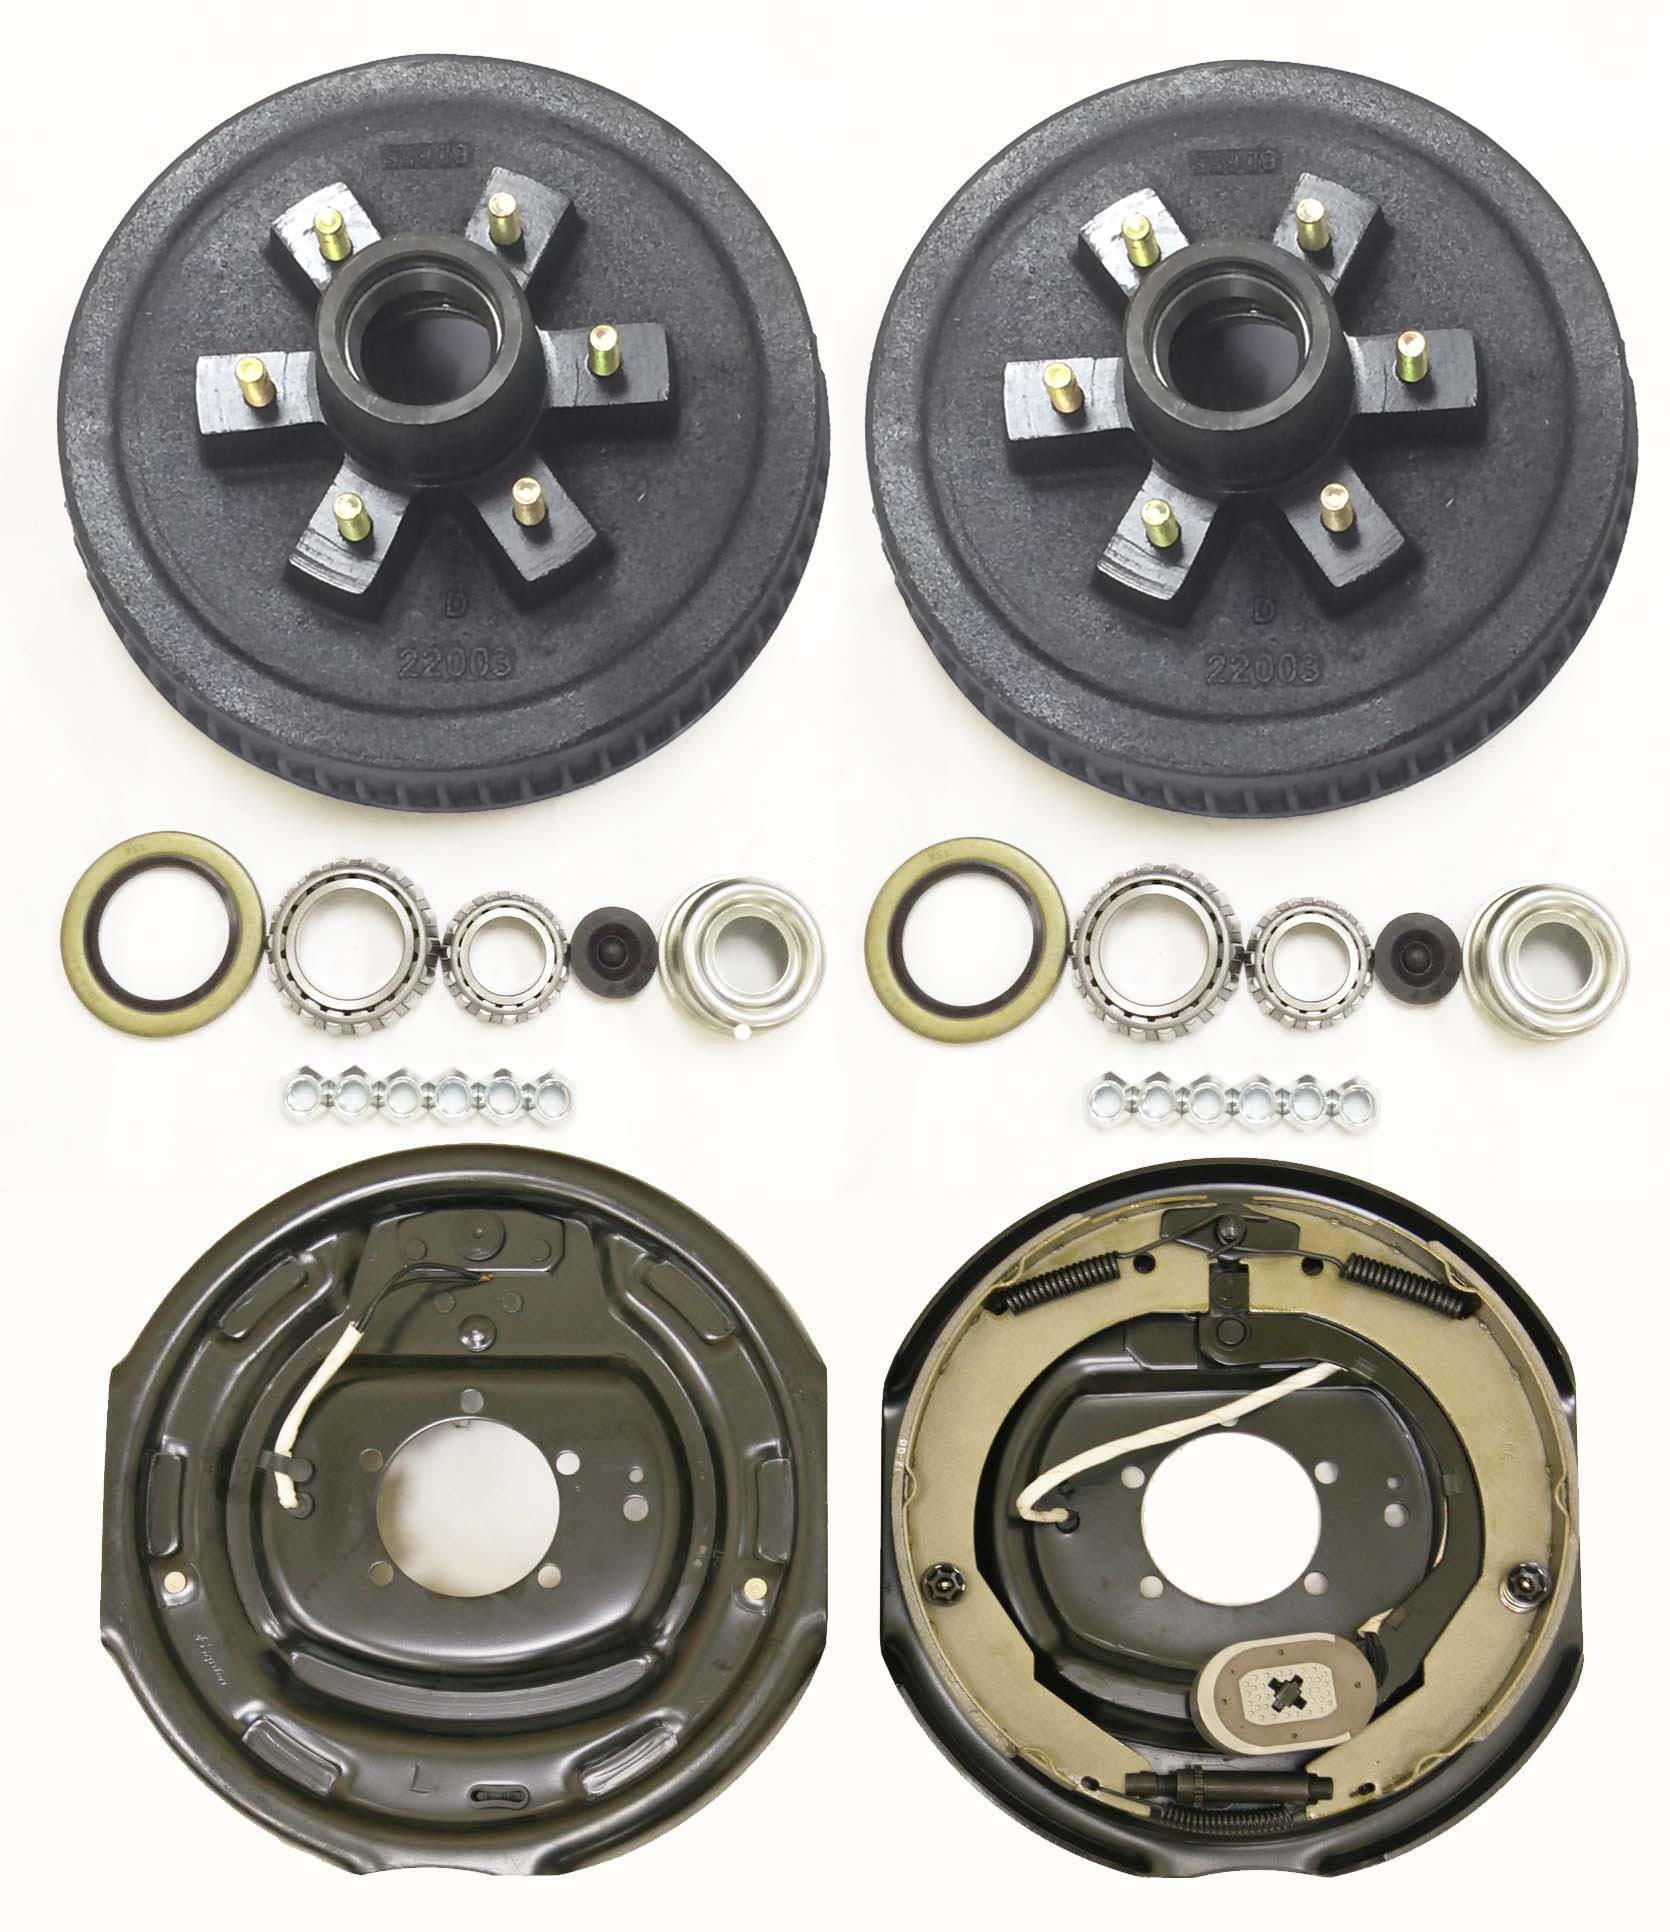 LIBRA Trailer 6 on 5.5'' B.C. Hub Drum Kits with 12''x2'' Electric Brakes for 5200-6000 Lbs Axle by LIBRA